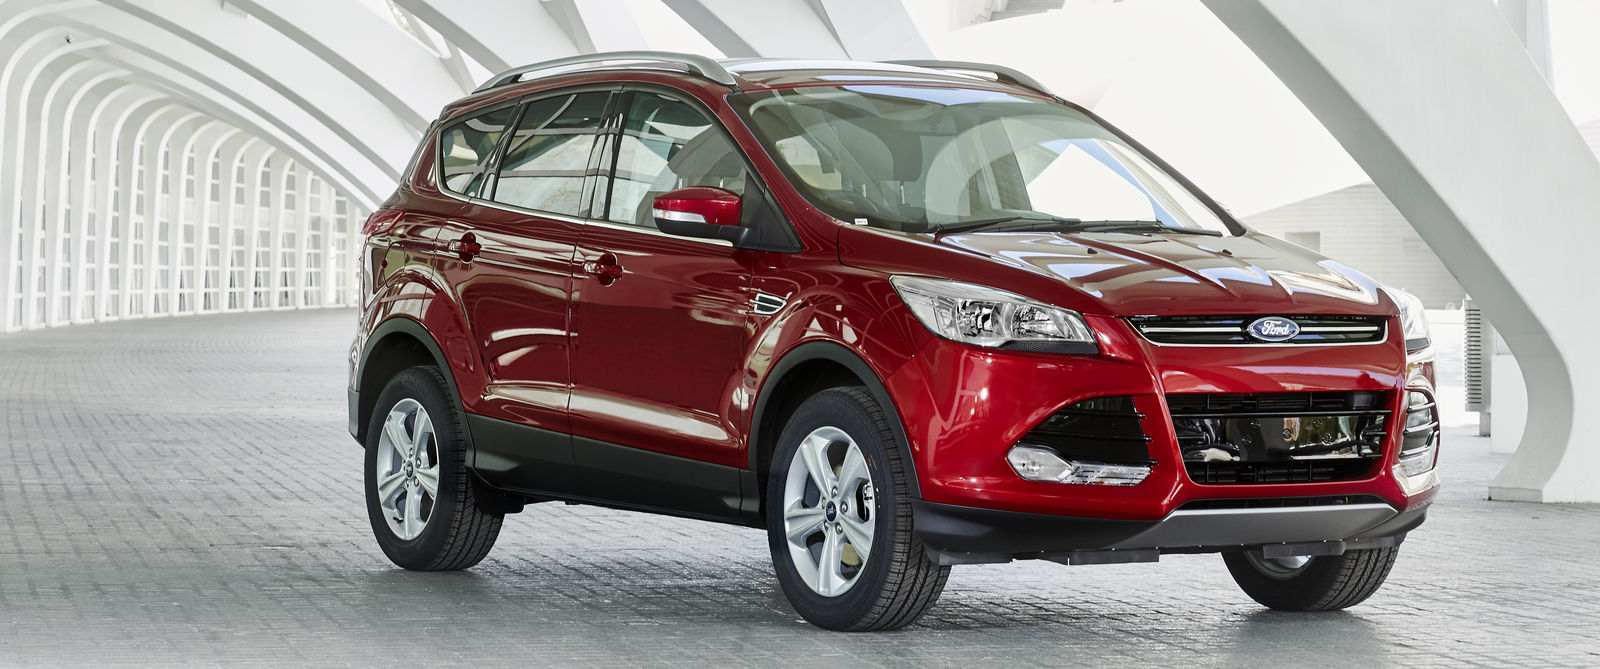 2015 ford kuga recieves power and economy gains carwow. Black Bedroom Furniture Sets. Home Design Ideas